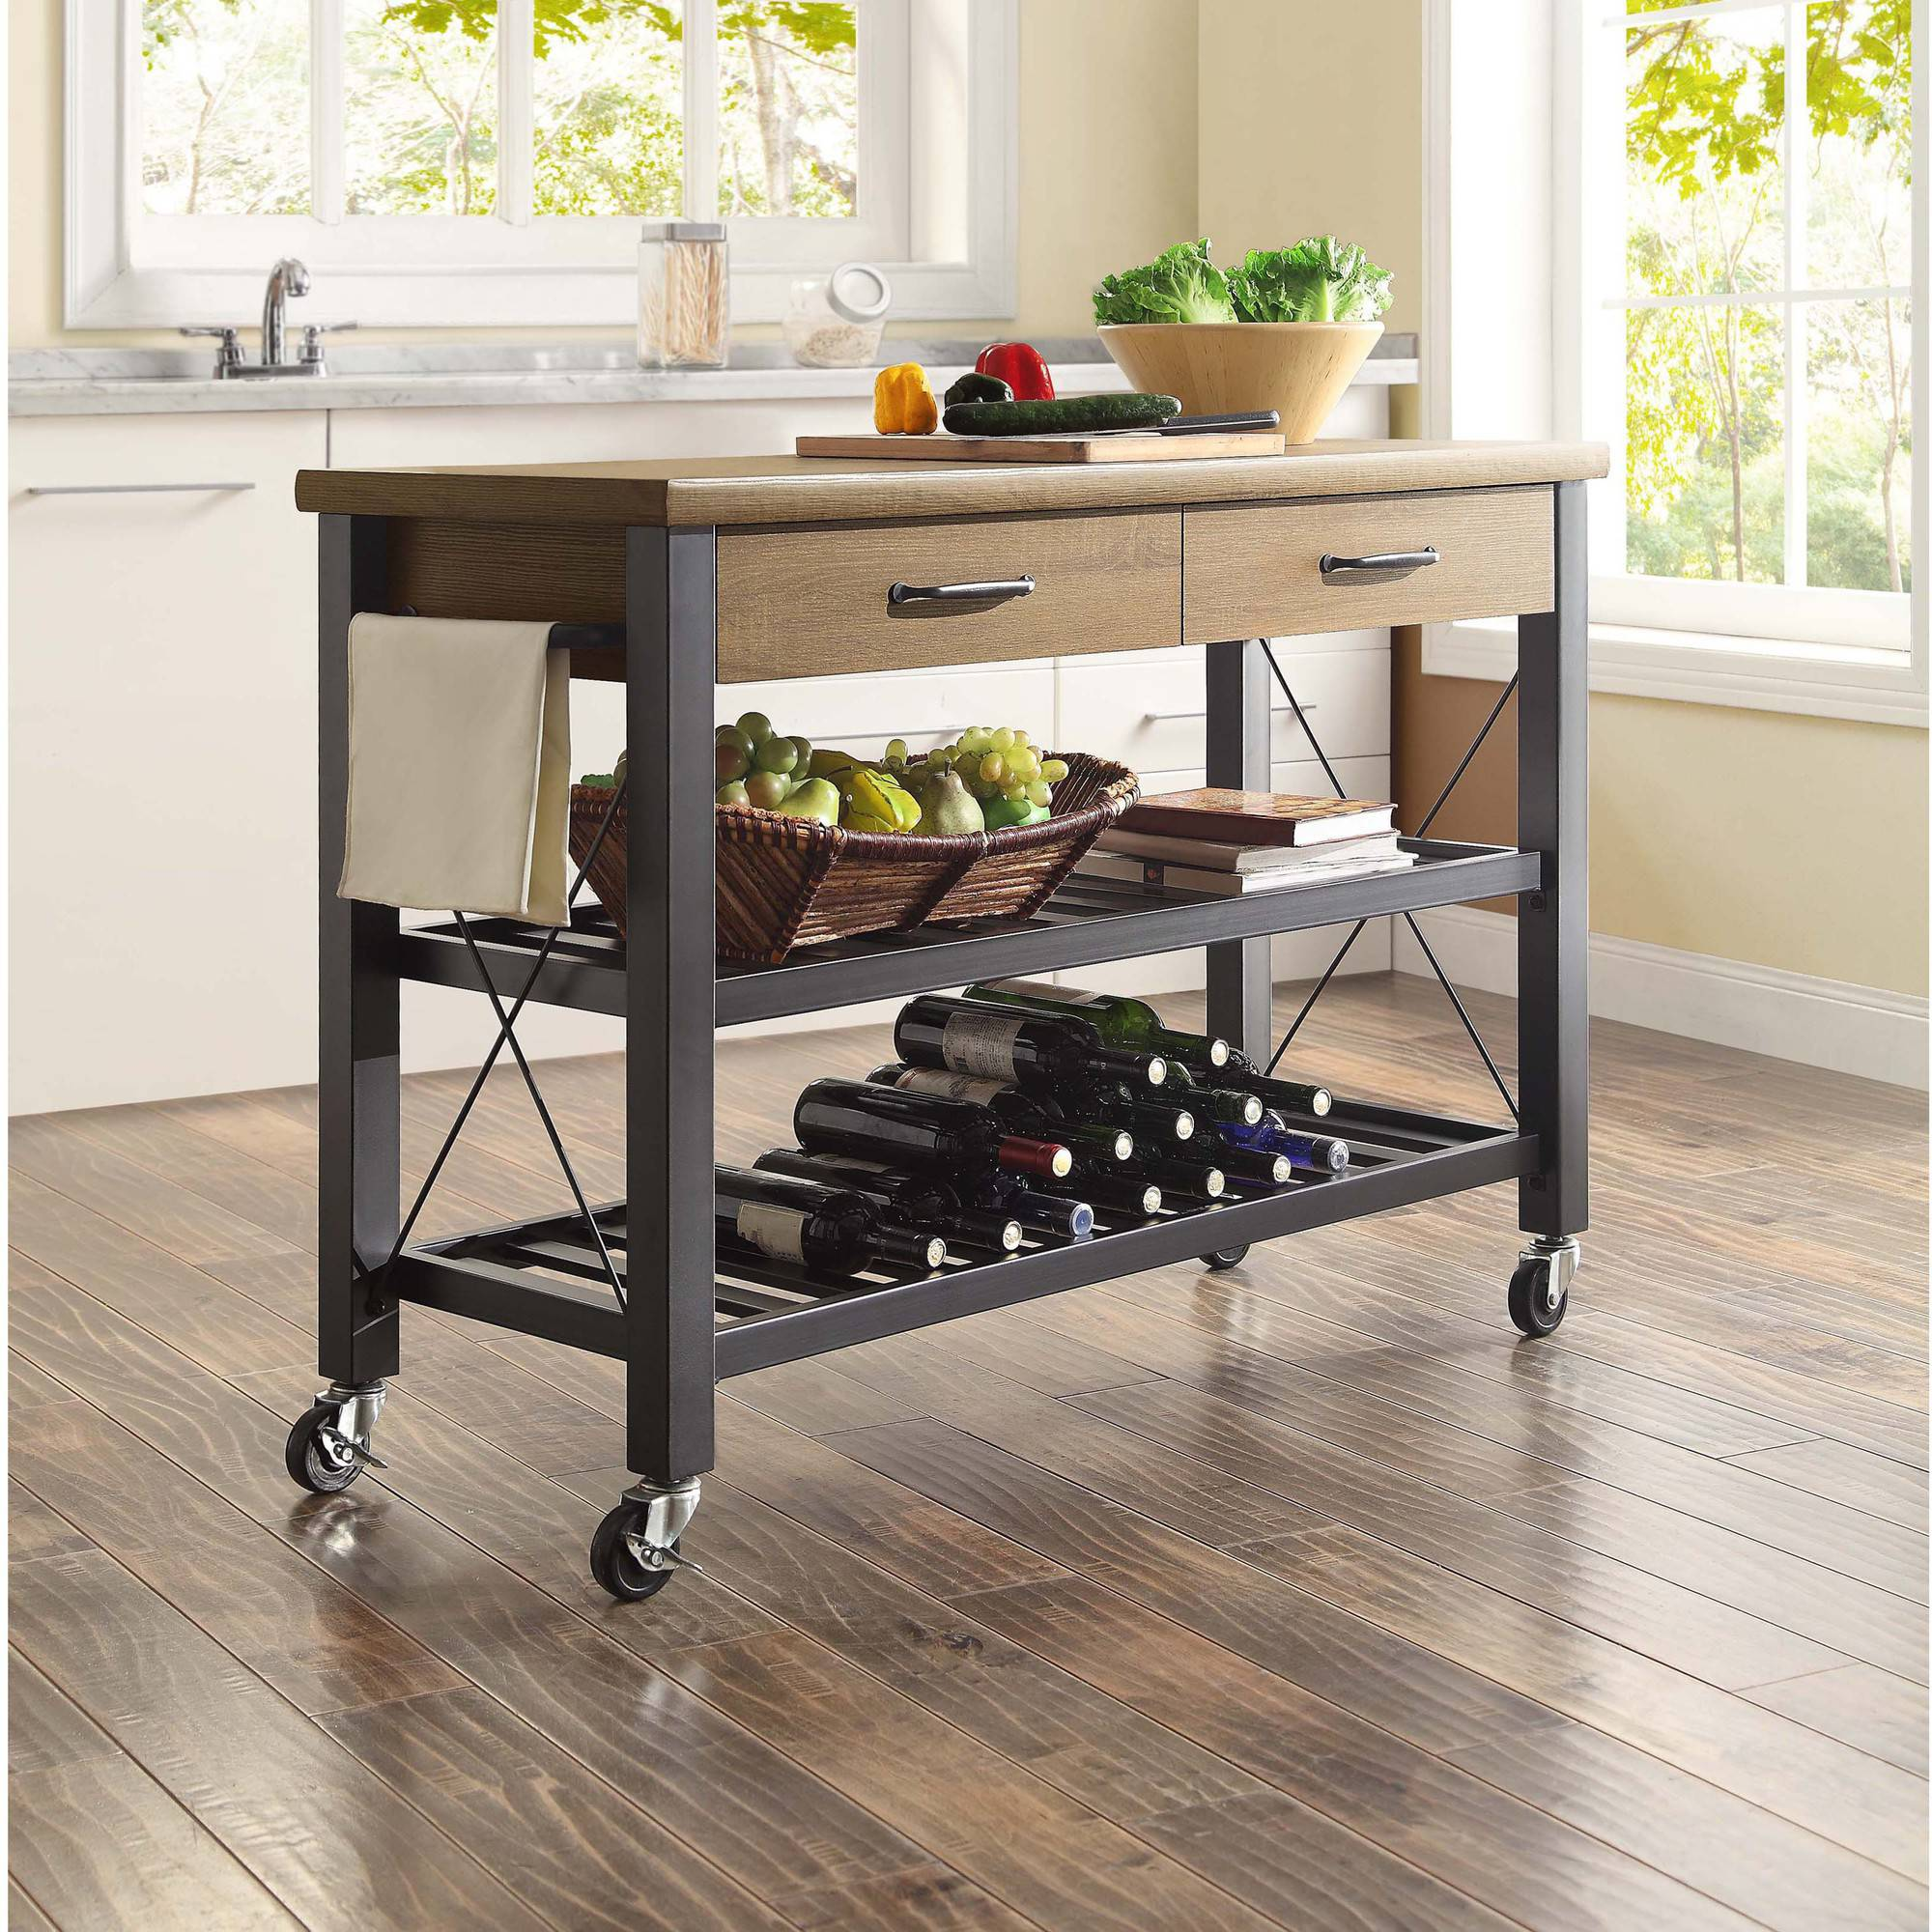 Kitchen Utility Cart. Kitchen Furniture Shopping Find The Best, Kitchen  Ideas